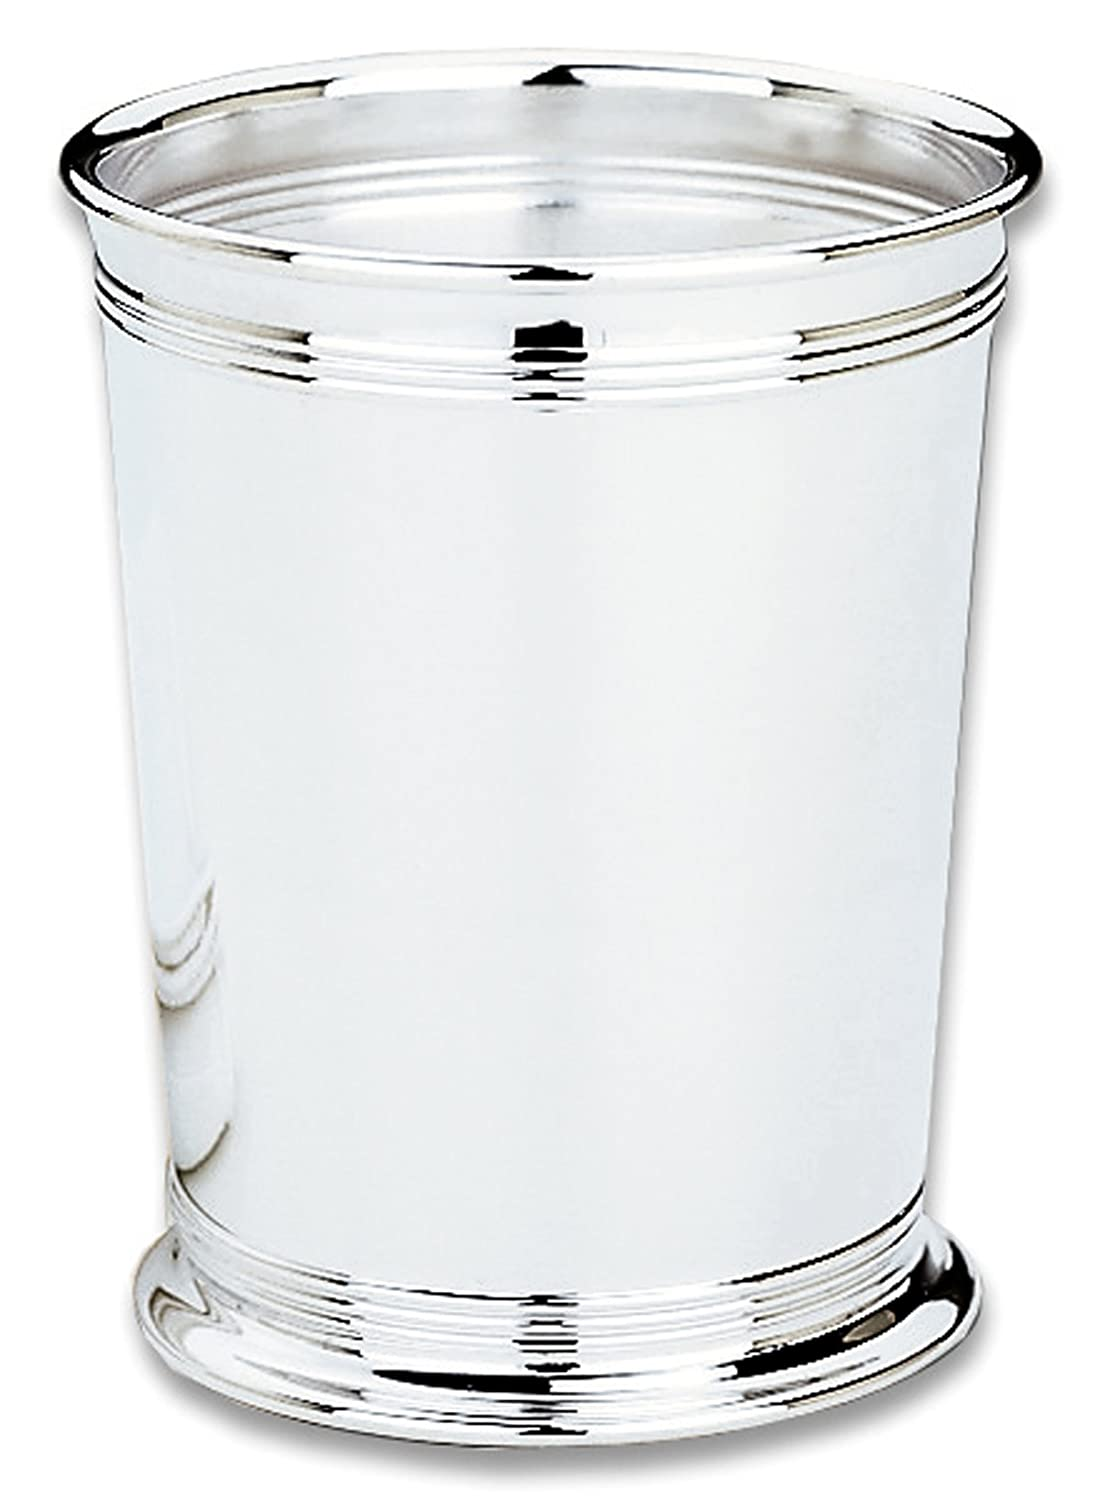 Amazon reed barton 10 ounce silver plate mint julep cup amazon reed barton 10 ounce silver plate mint julep cup with double banding silver beaded mint julep mint julep cups reviewsmspy